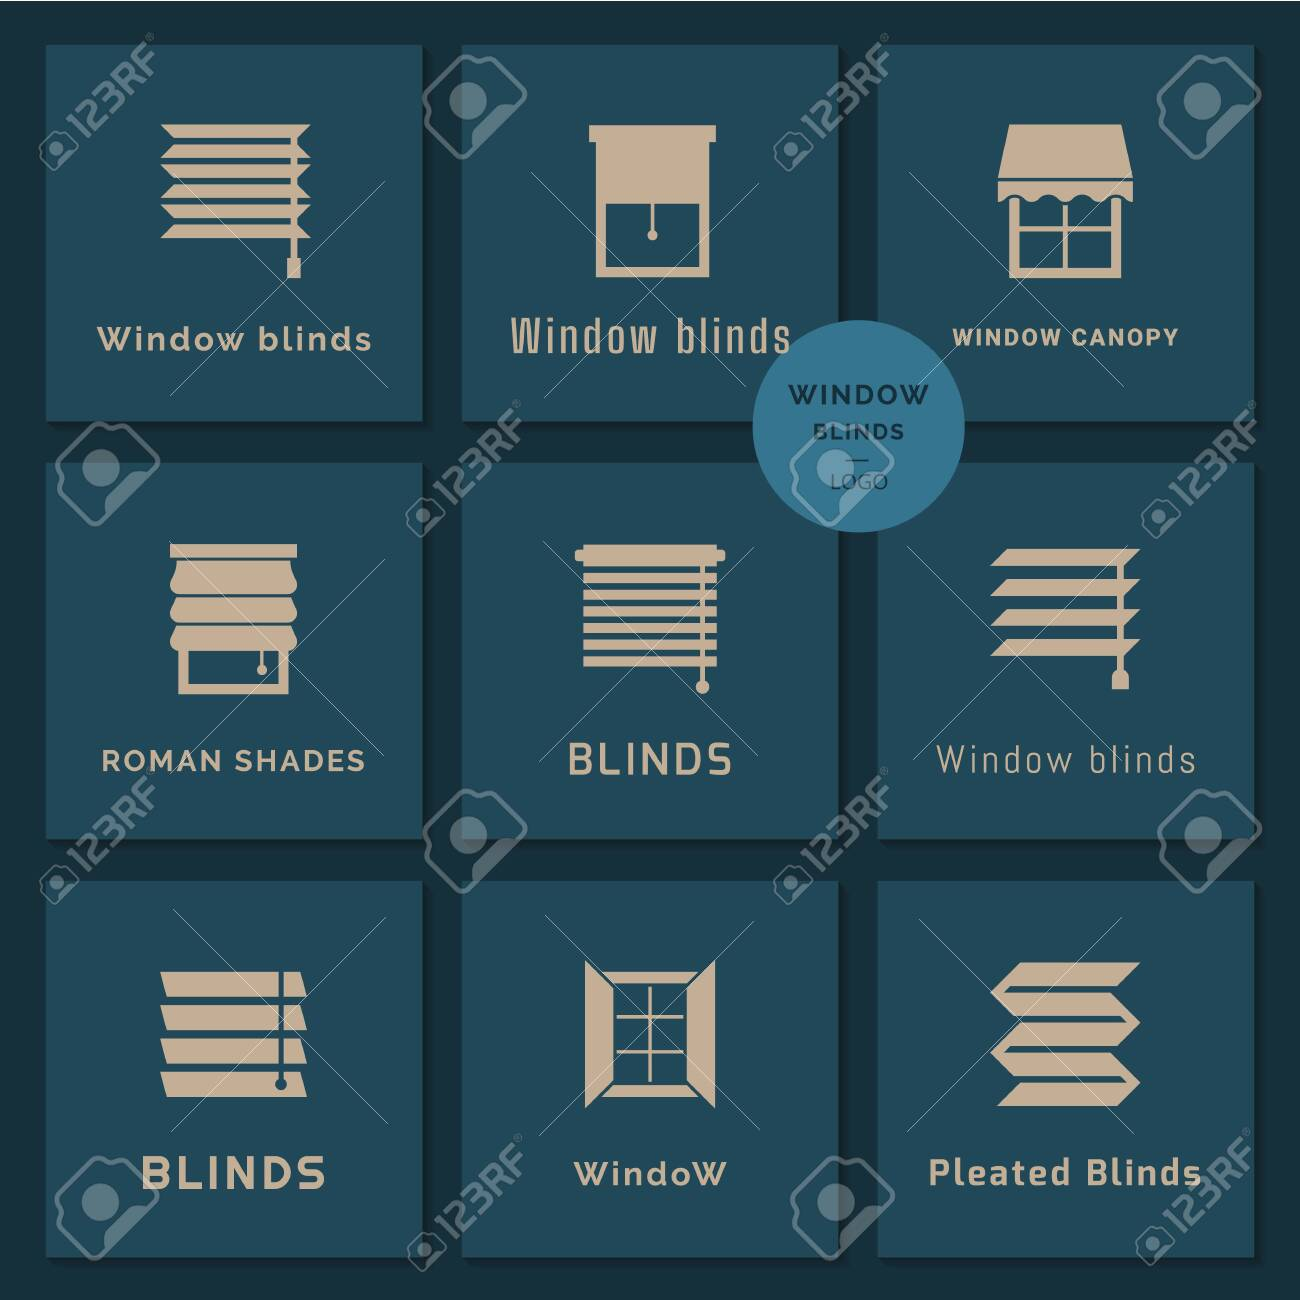 Pixel perfect logotypes set in vector. Vector isolated icons set of window blinds vector glyph icons. Window treatments and curtains glyph icons set. Interior design, home decor shop. - 132897893